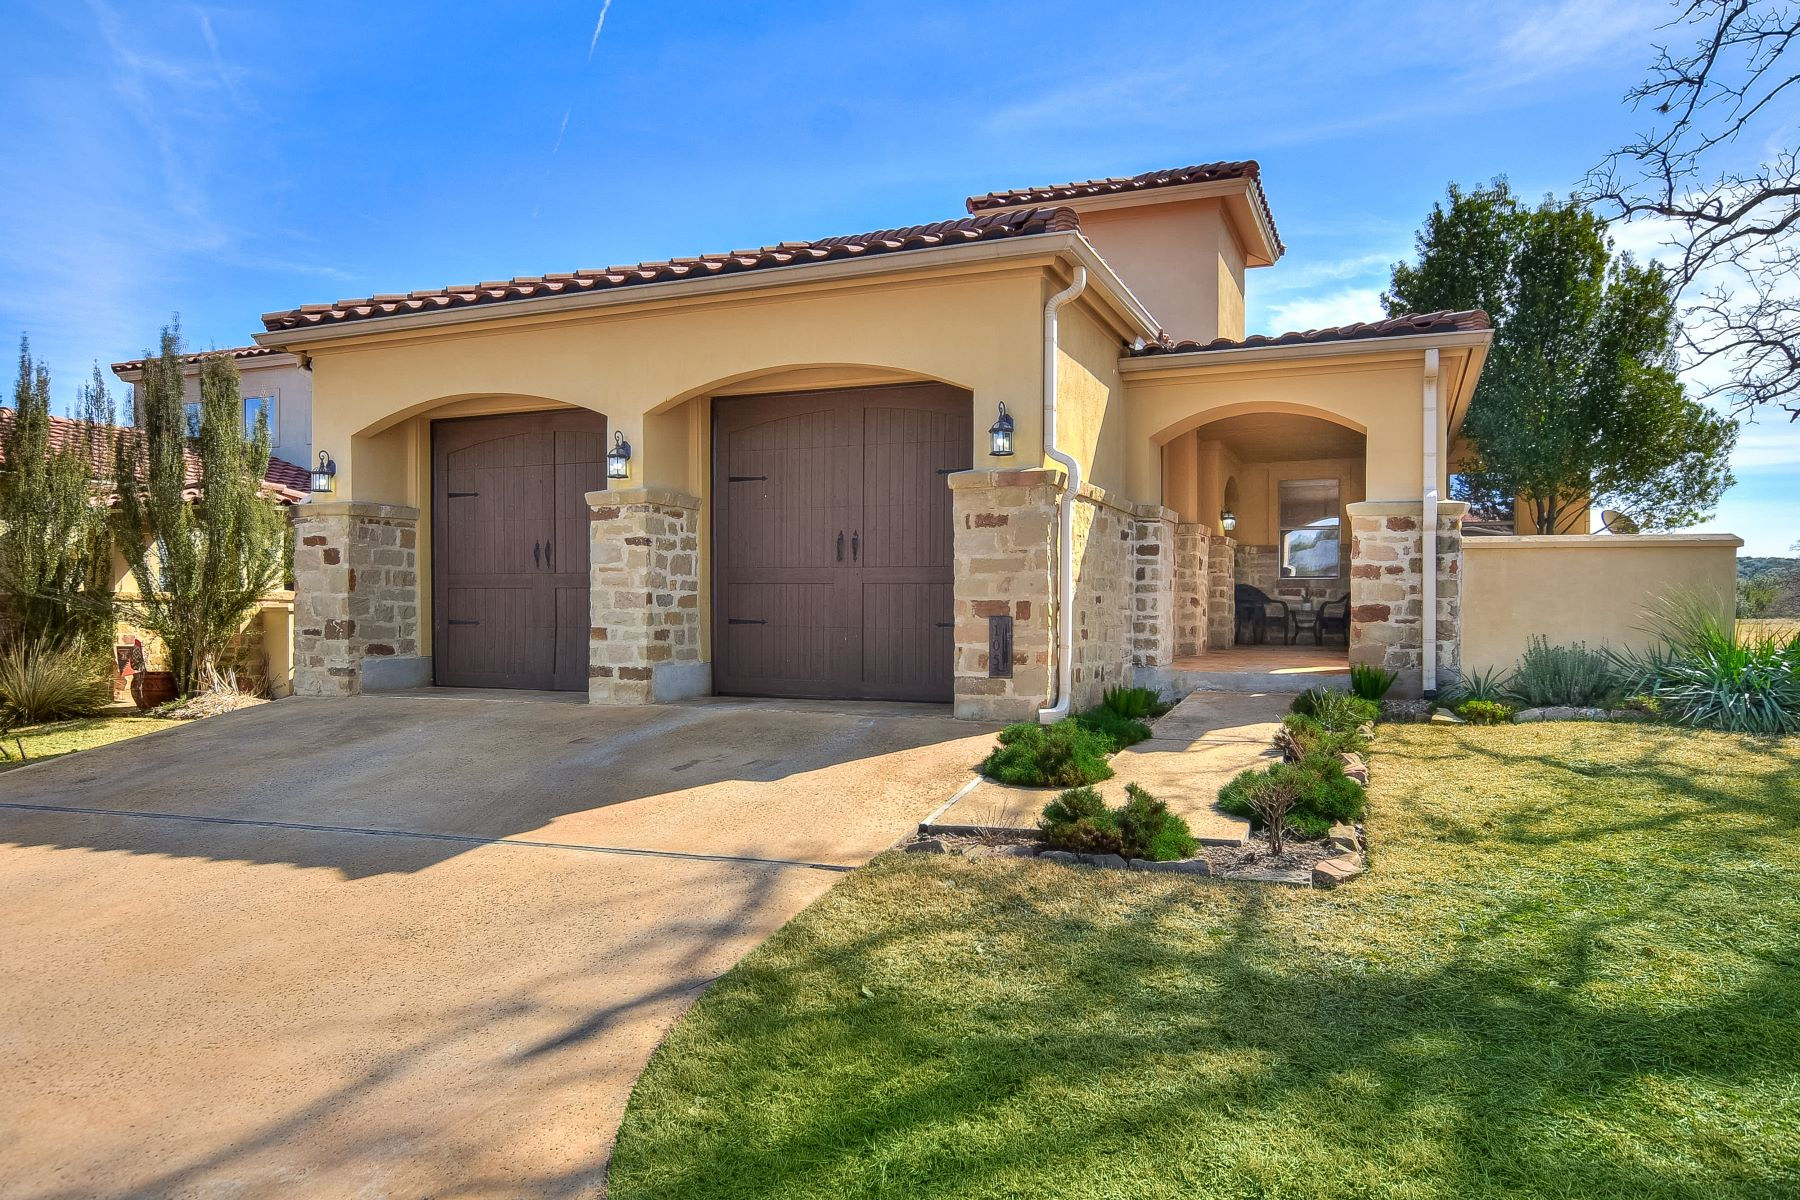 Single Family Home for Sale at Low Maintenance Resort Living in Horseshoe Bay 105 Maravilla Way Horseshoe Bay, Texas 78657 United States